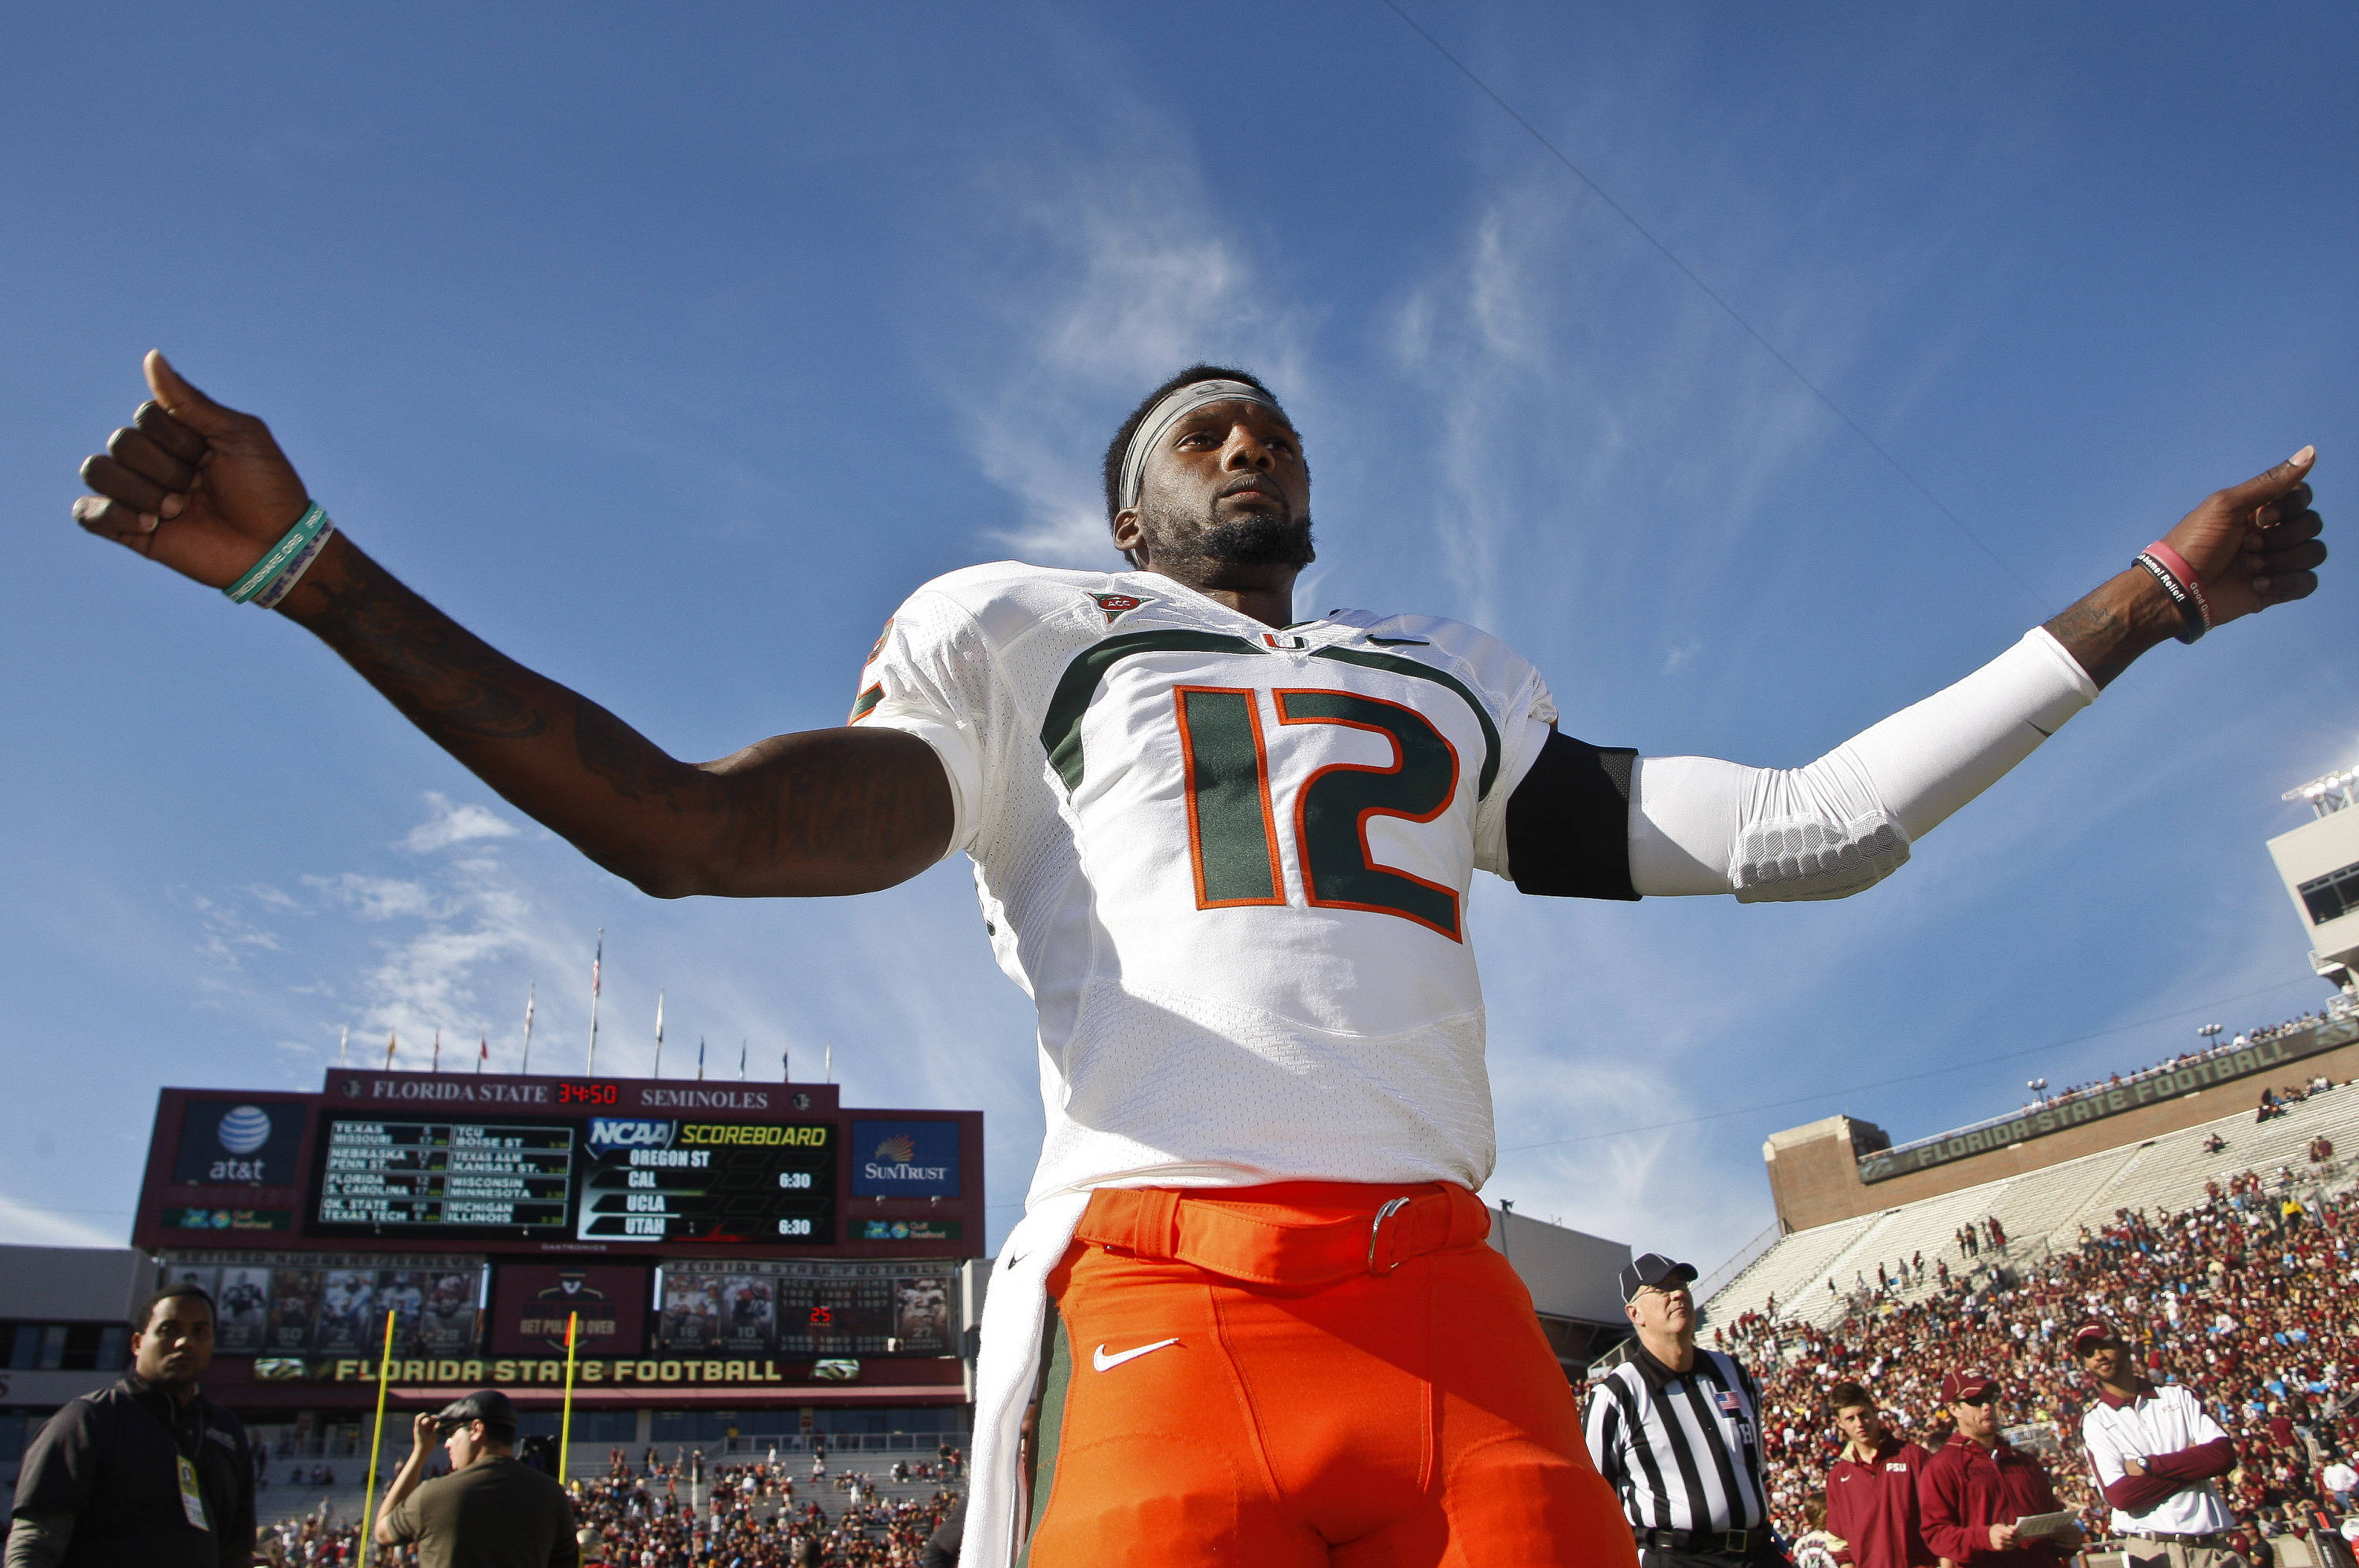 Miami quarterback Jacory Harris (12) stretches prior to an NCAA college football game against Florida State on Saturday, Nov. 12, 2011, in Tallahassee, Fla. (AP Photo/Phil Sears)